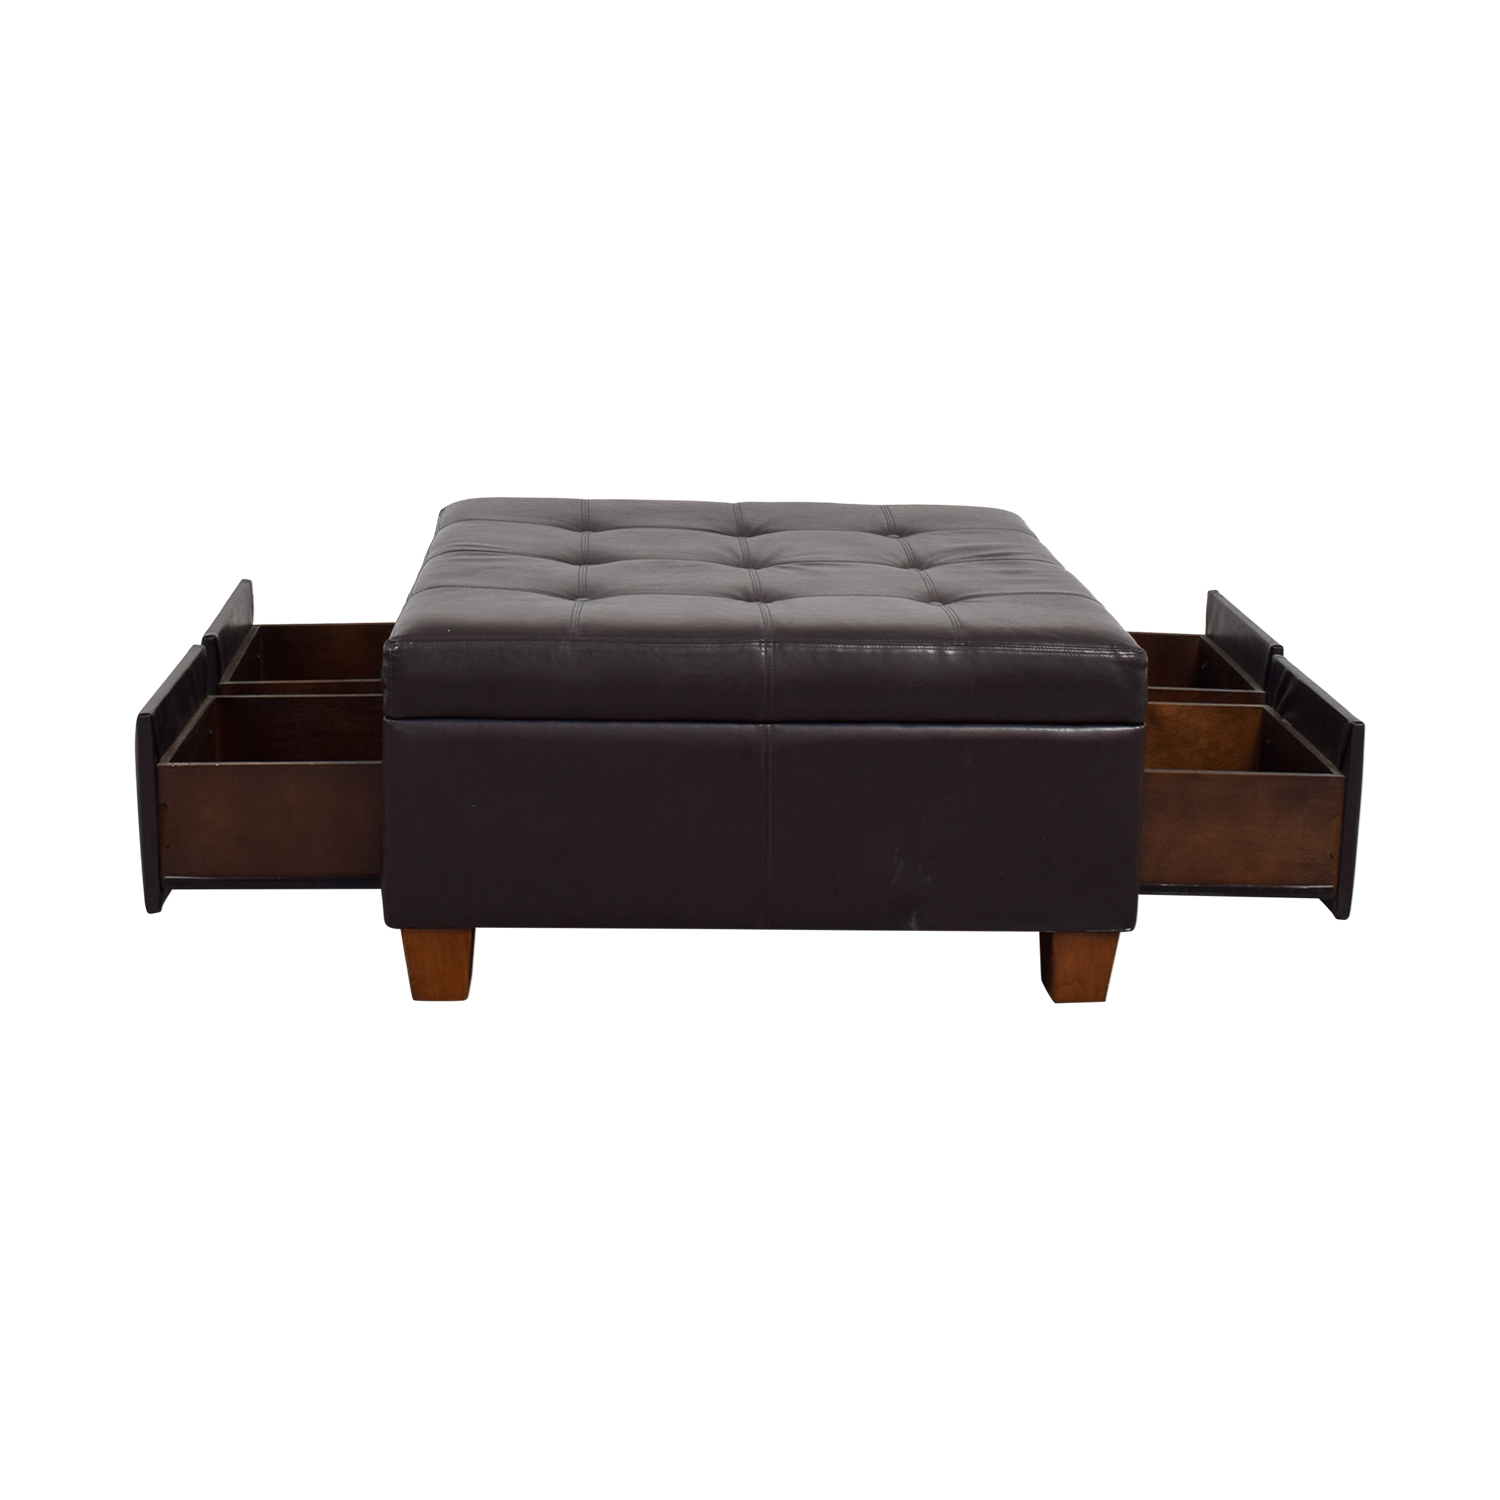 Pottery Barn Pottery Barn Brown Tufted Leather Storage Ottoman price